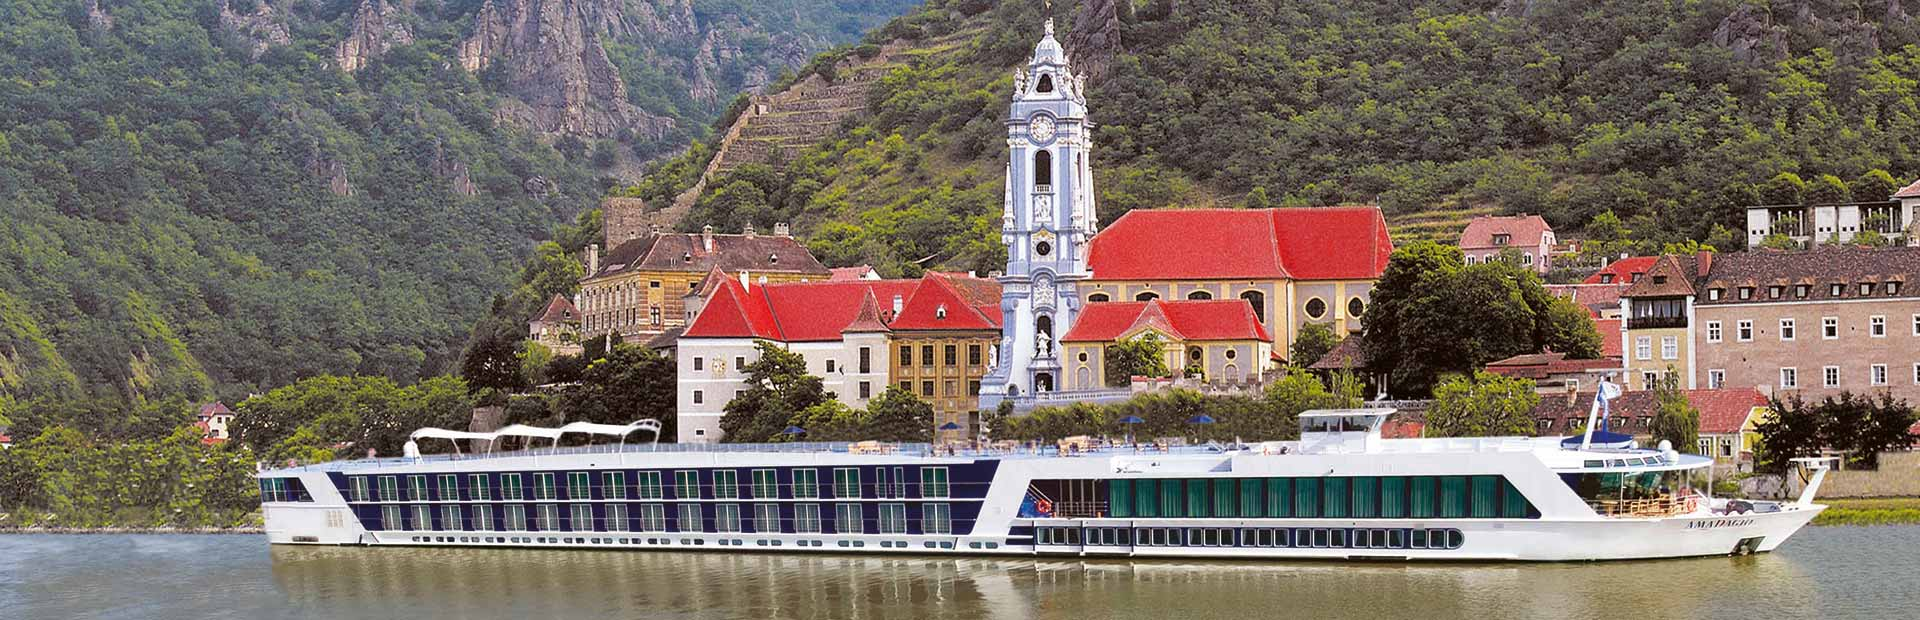 AmaWaterways Amadagio